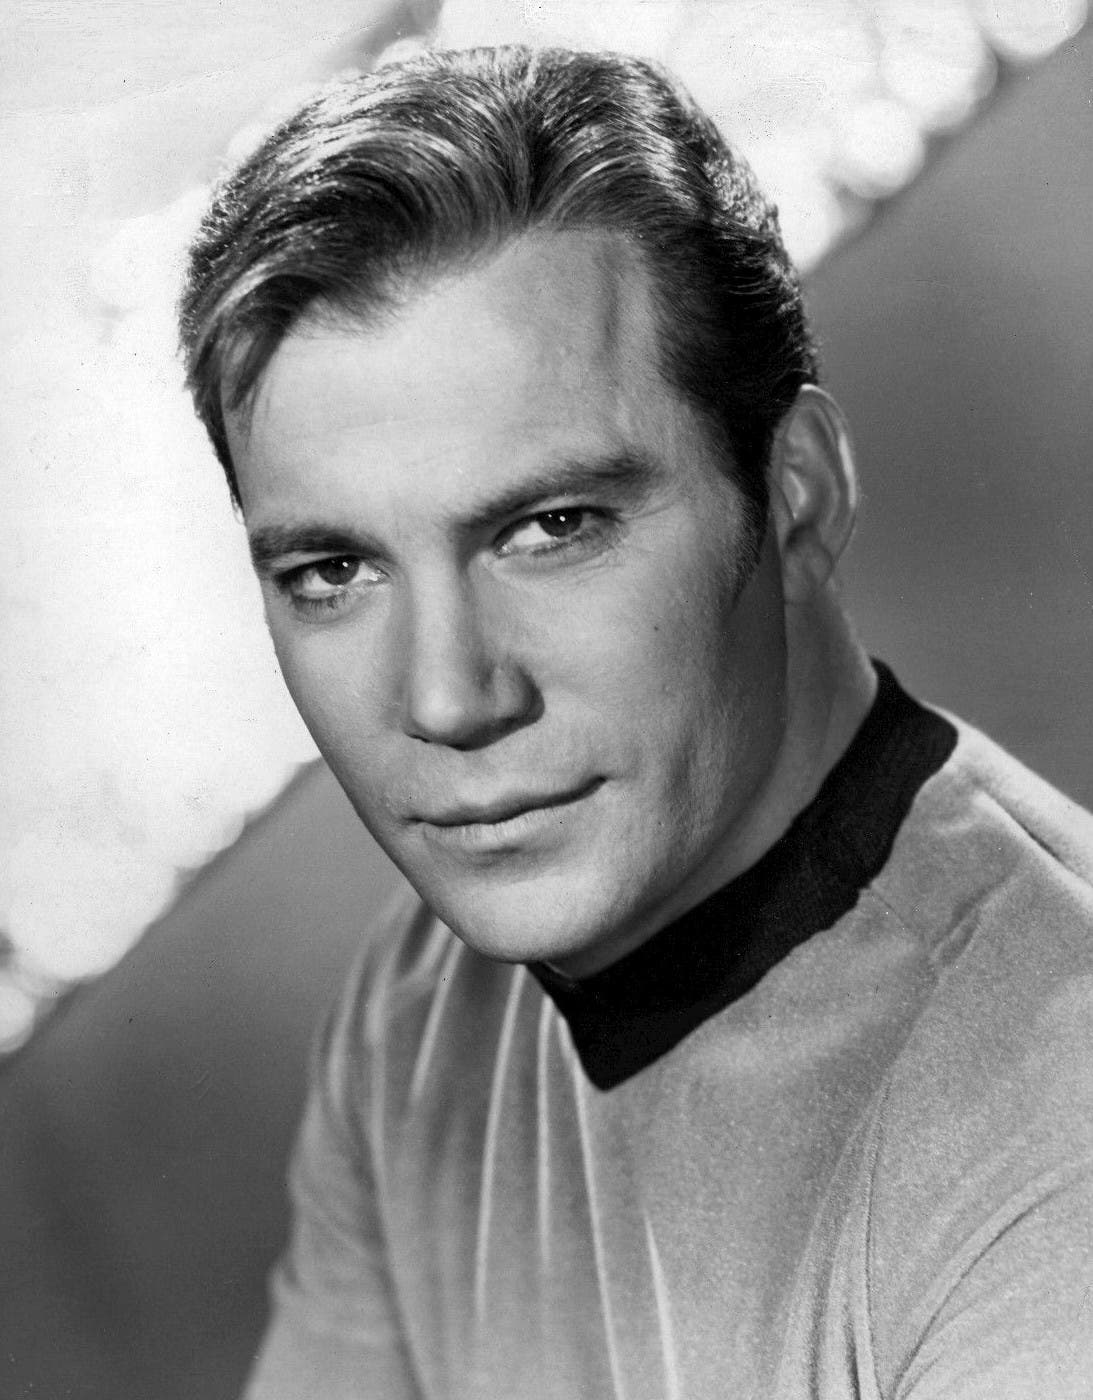 William Shatner as Captain Kirk on Star Trek. (Photo courtesy: NBC Television)